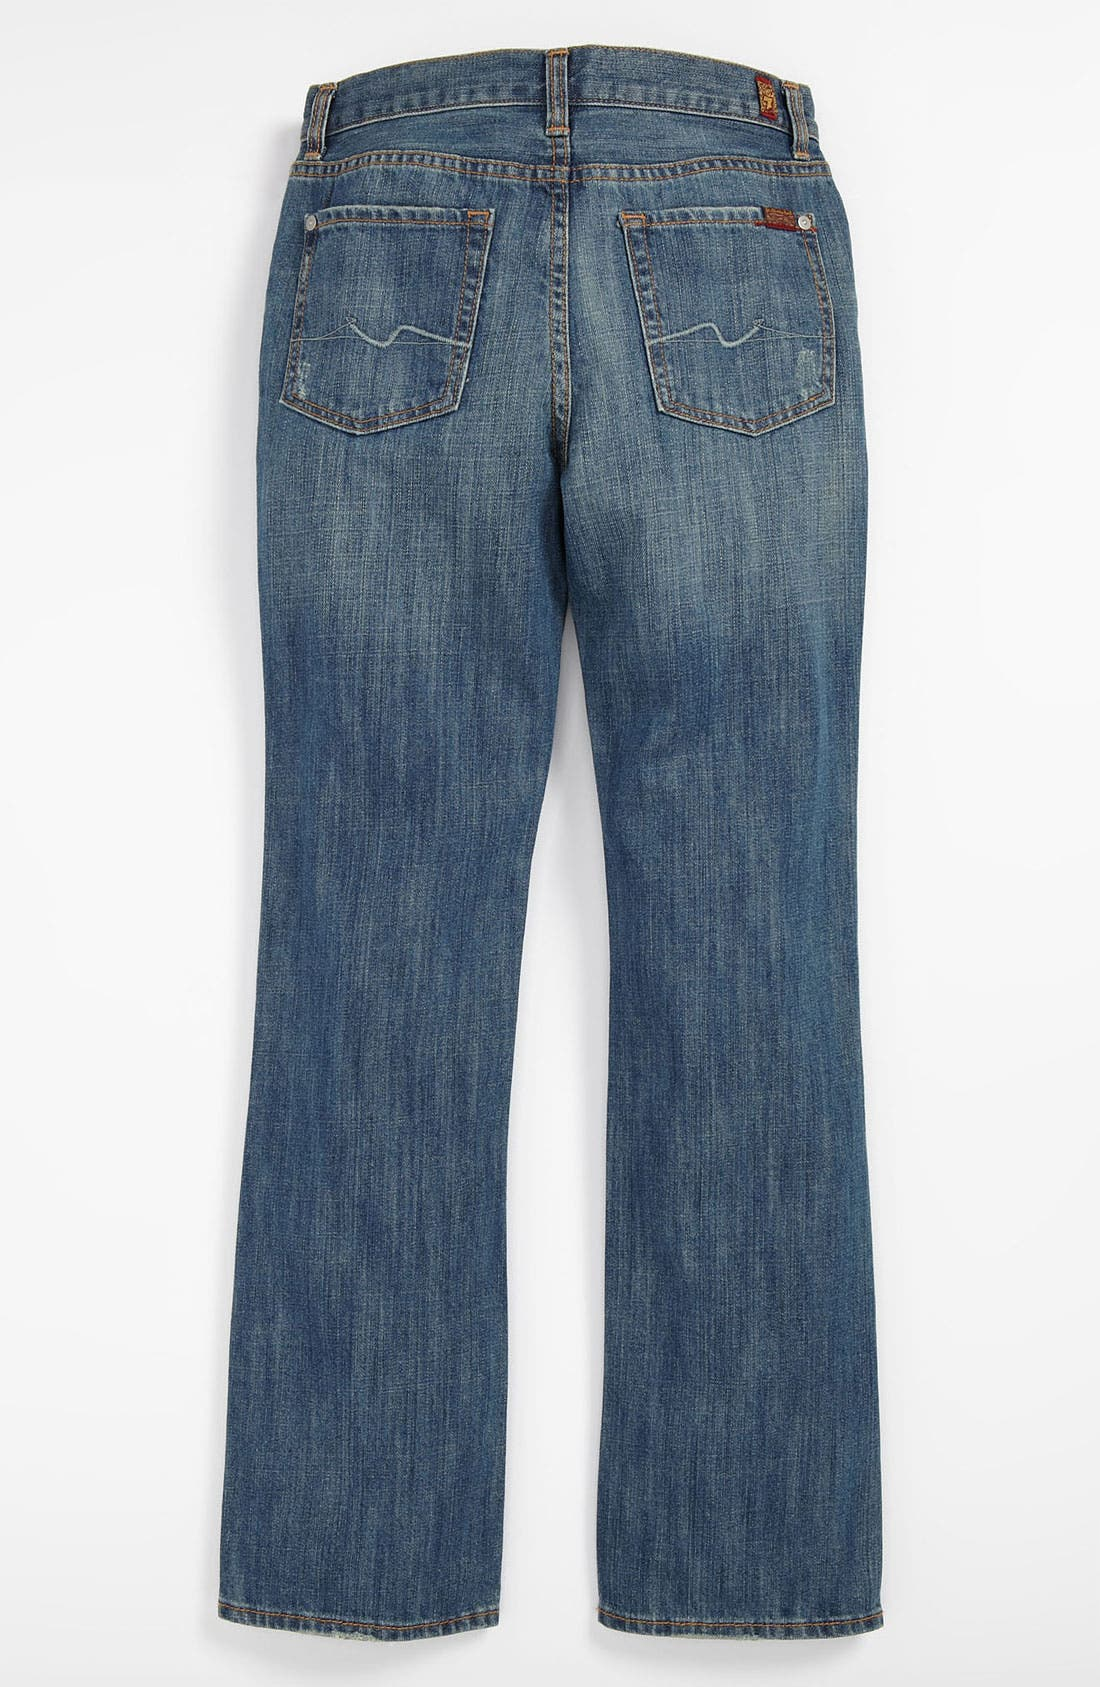 Main Image - 7 For All Mankind® 'Nate' Slim Bootcut Jeans (Little Boys)